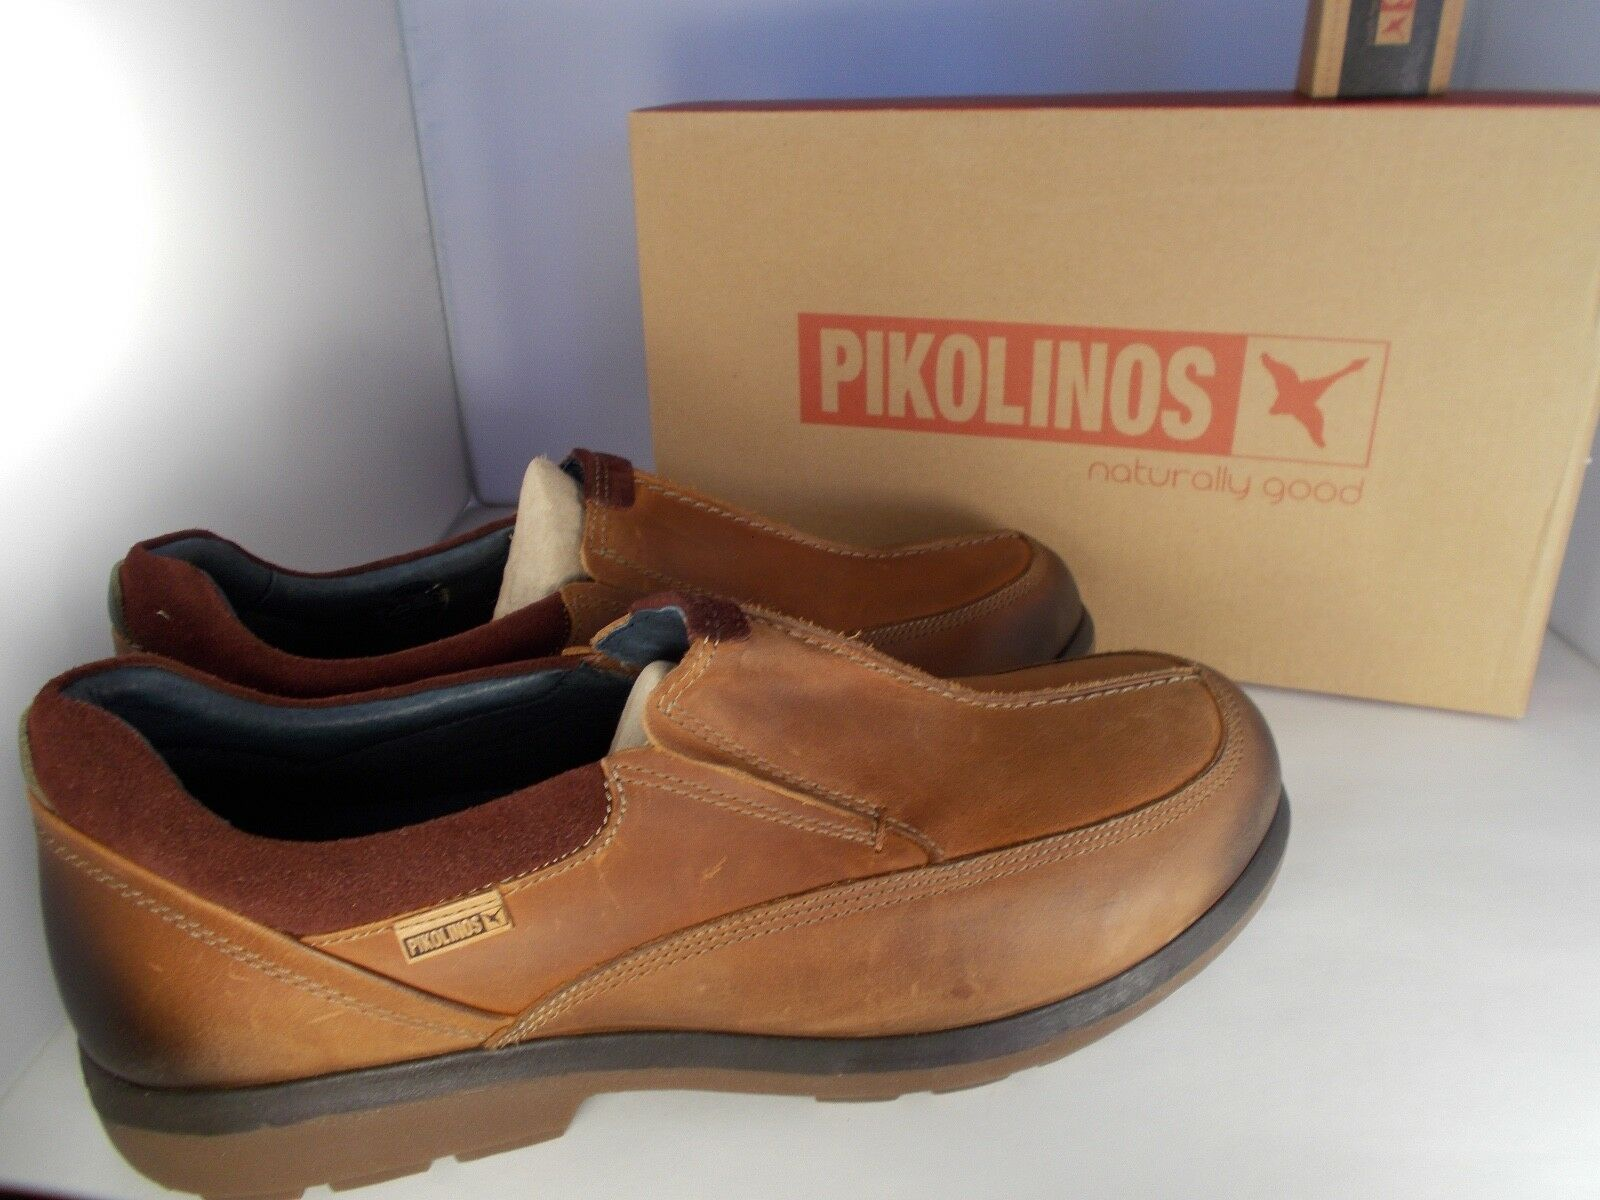 Pikolinos Badajoz M0H-3069SP Brown Leather Men's shoes Size 12.5-13 New In Box